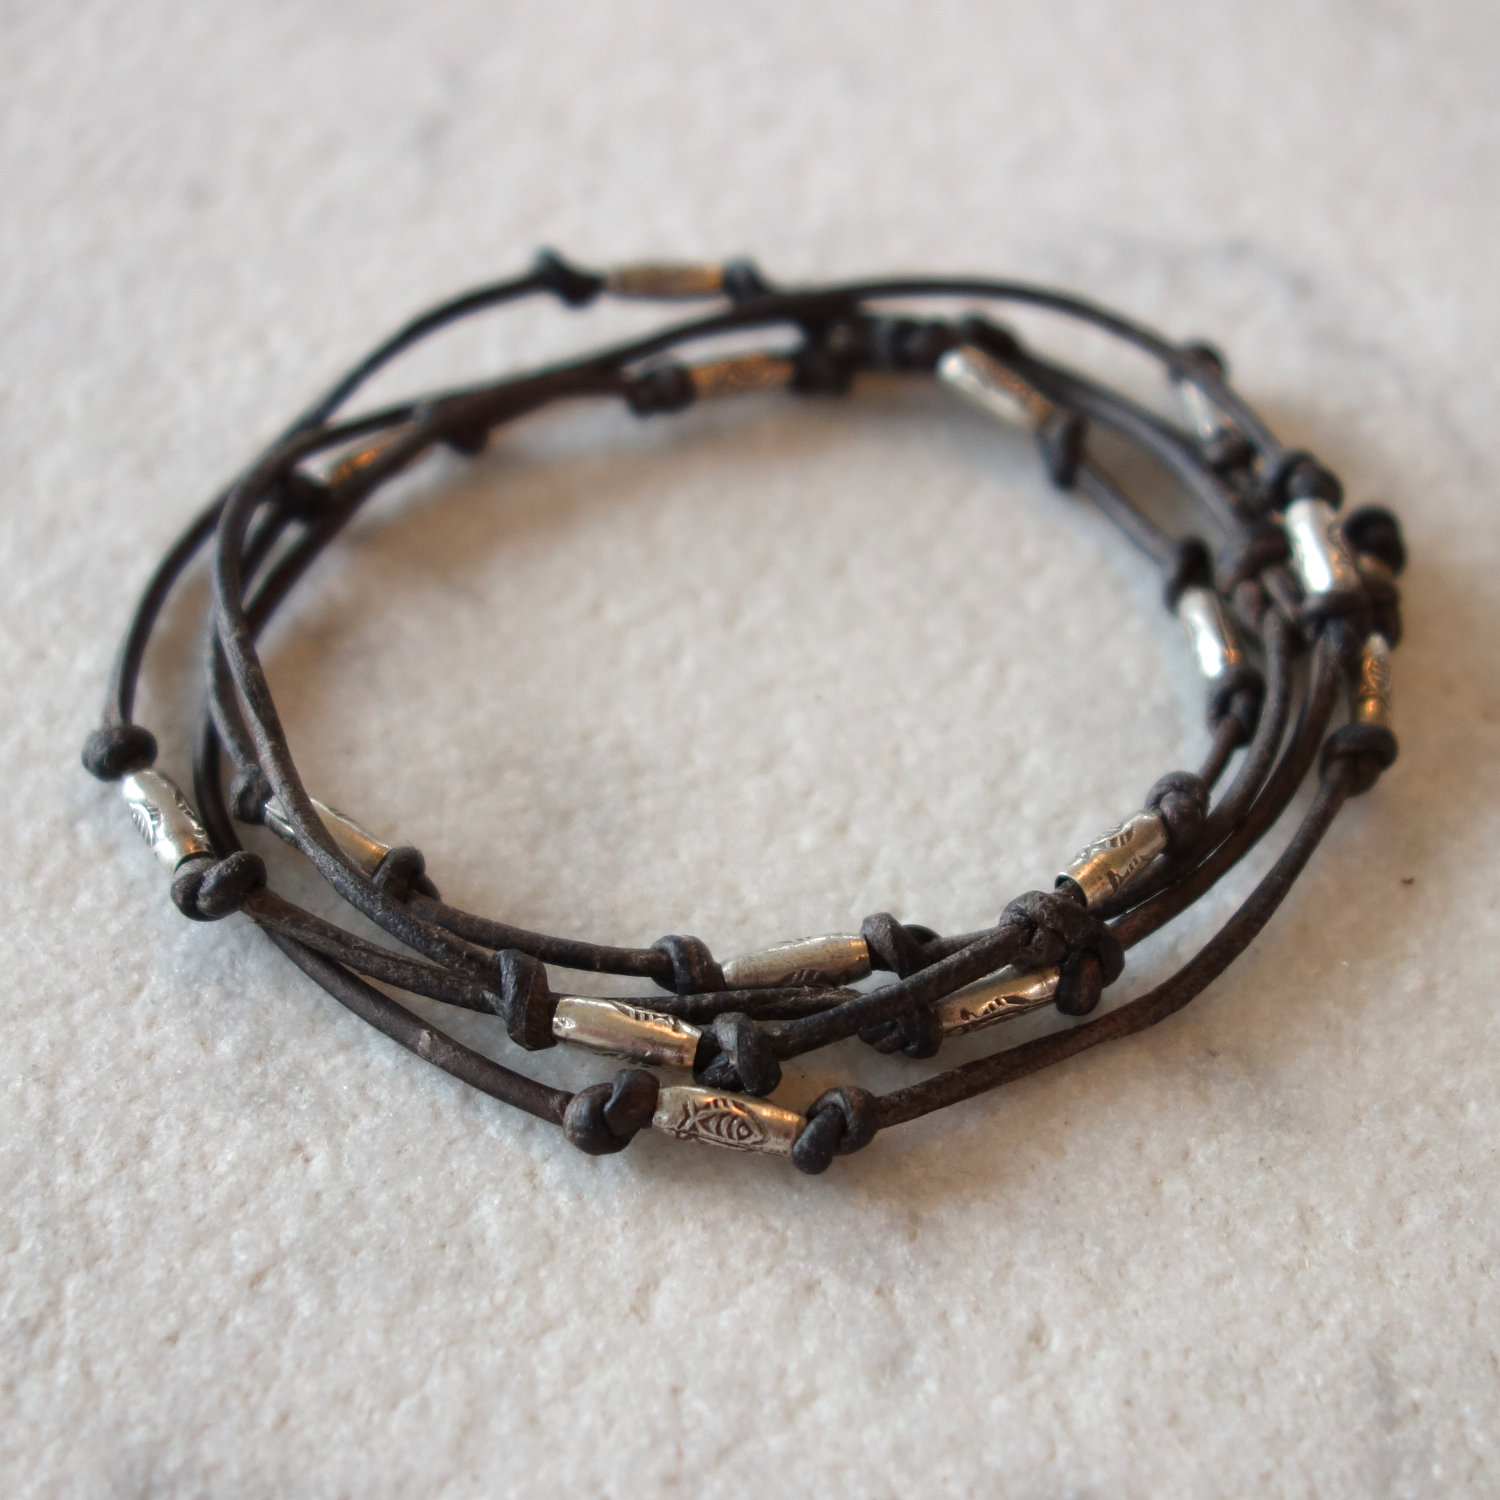 Thai silver and leather wrap around bracelet